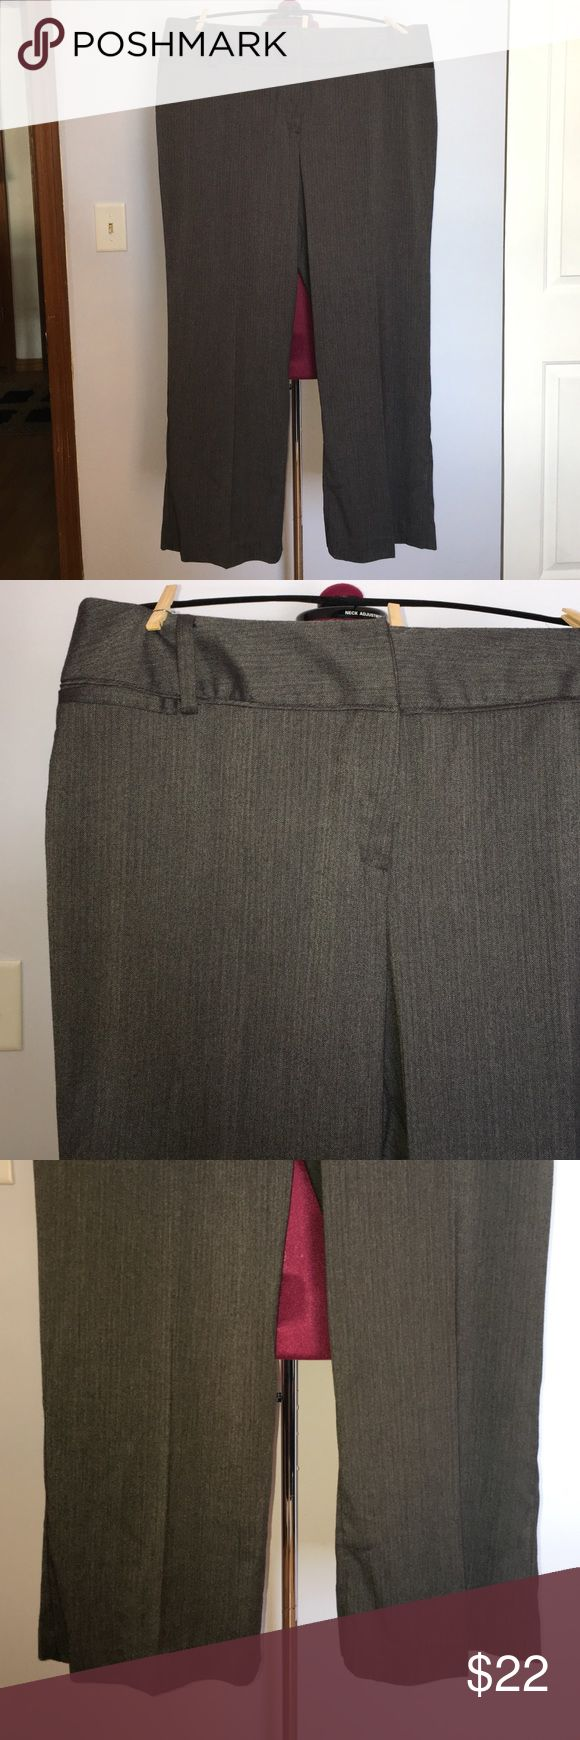 "Larry Levine Grey Herringbone Wide Leg Dress Pants Up for grabs is this pair of slacks from Larry Levine Wiman. They are a size 18W petite with a 29.5"" inseam, a 42.5"" waist and 52"" hips. These dress pants are a wide leg style and a curvy fit; curvy in the hip and thigh, a defined waistline and an hourglass silhouette. They are a dark grey herringbone with a flat panel front. These trousers have small pockets on the front hips and pockets on the rear. They are new with the original tags…"